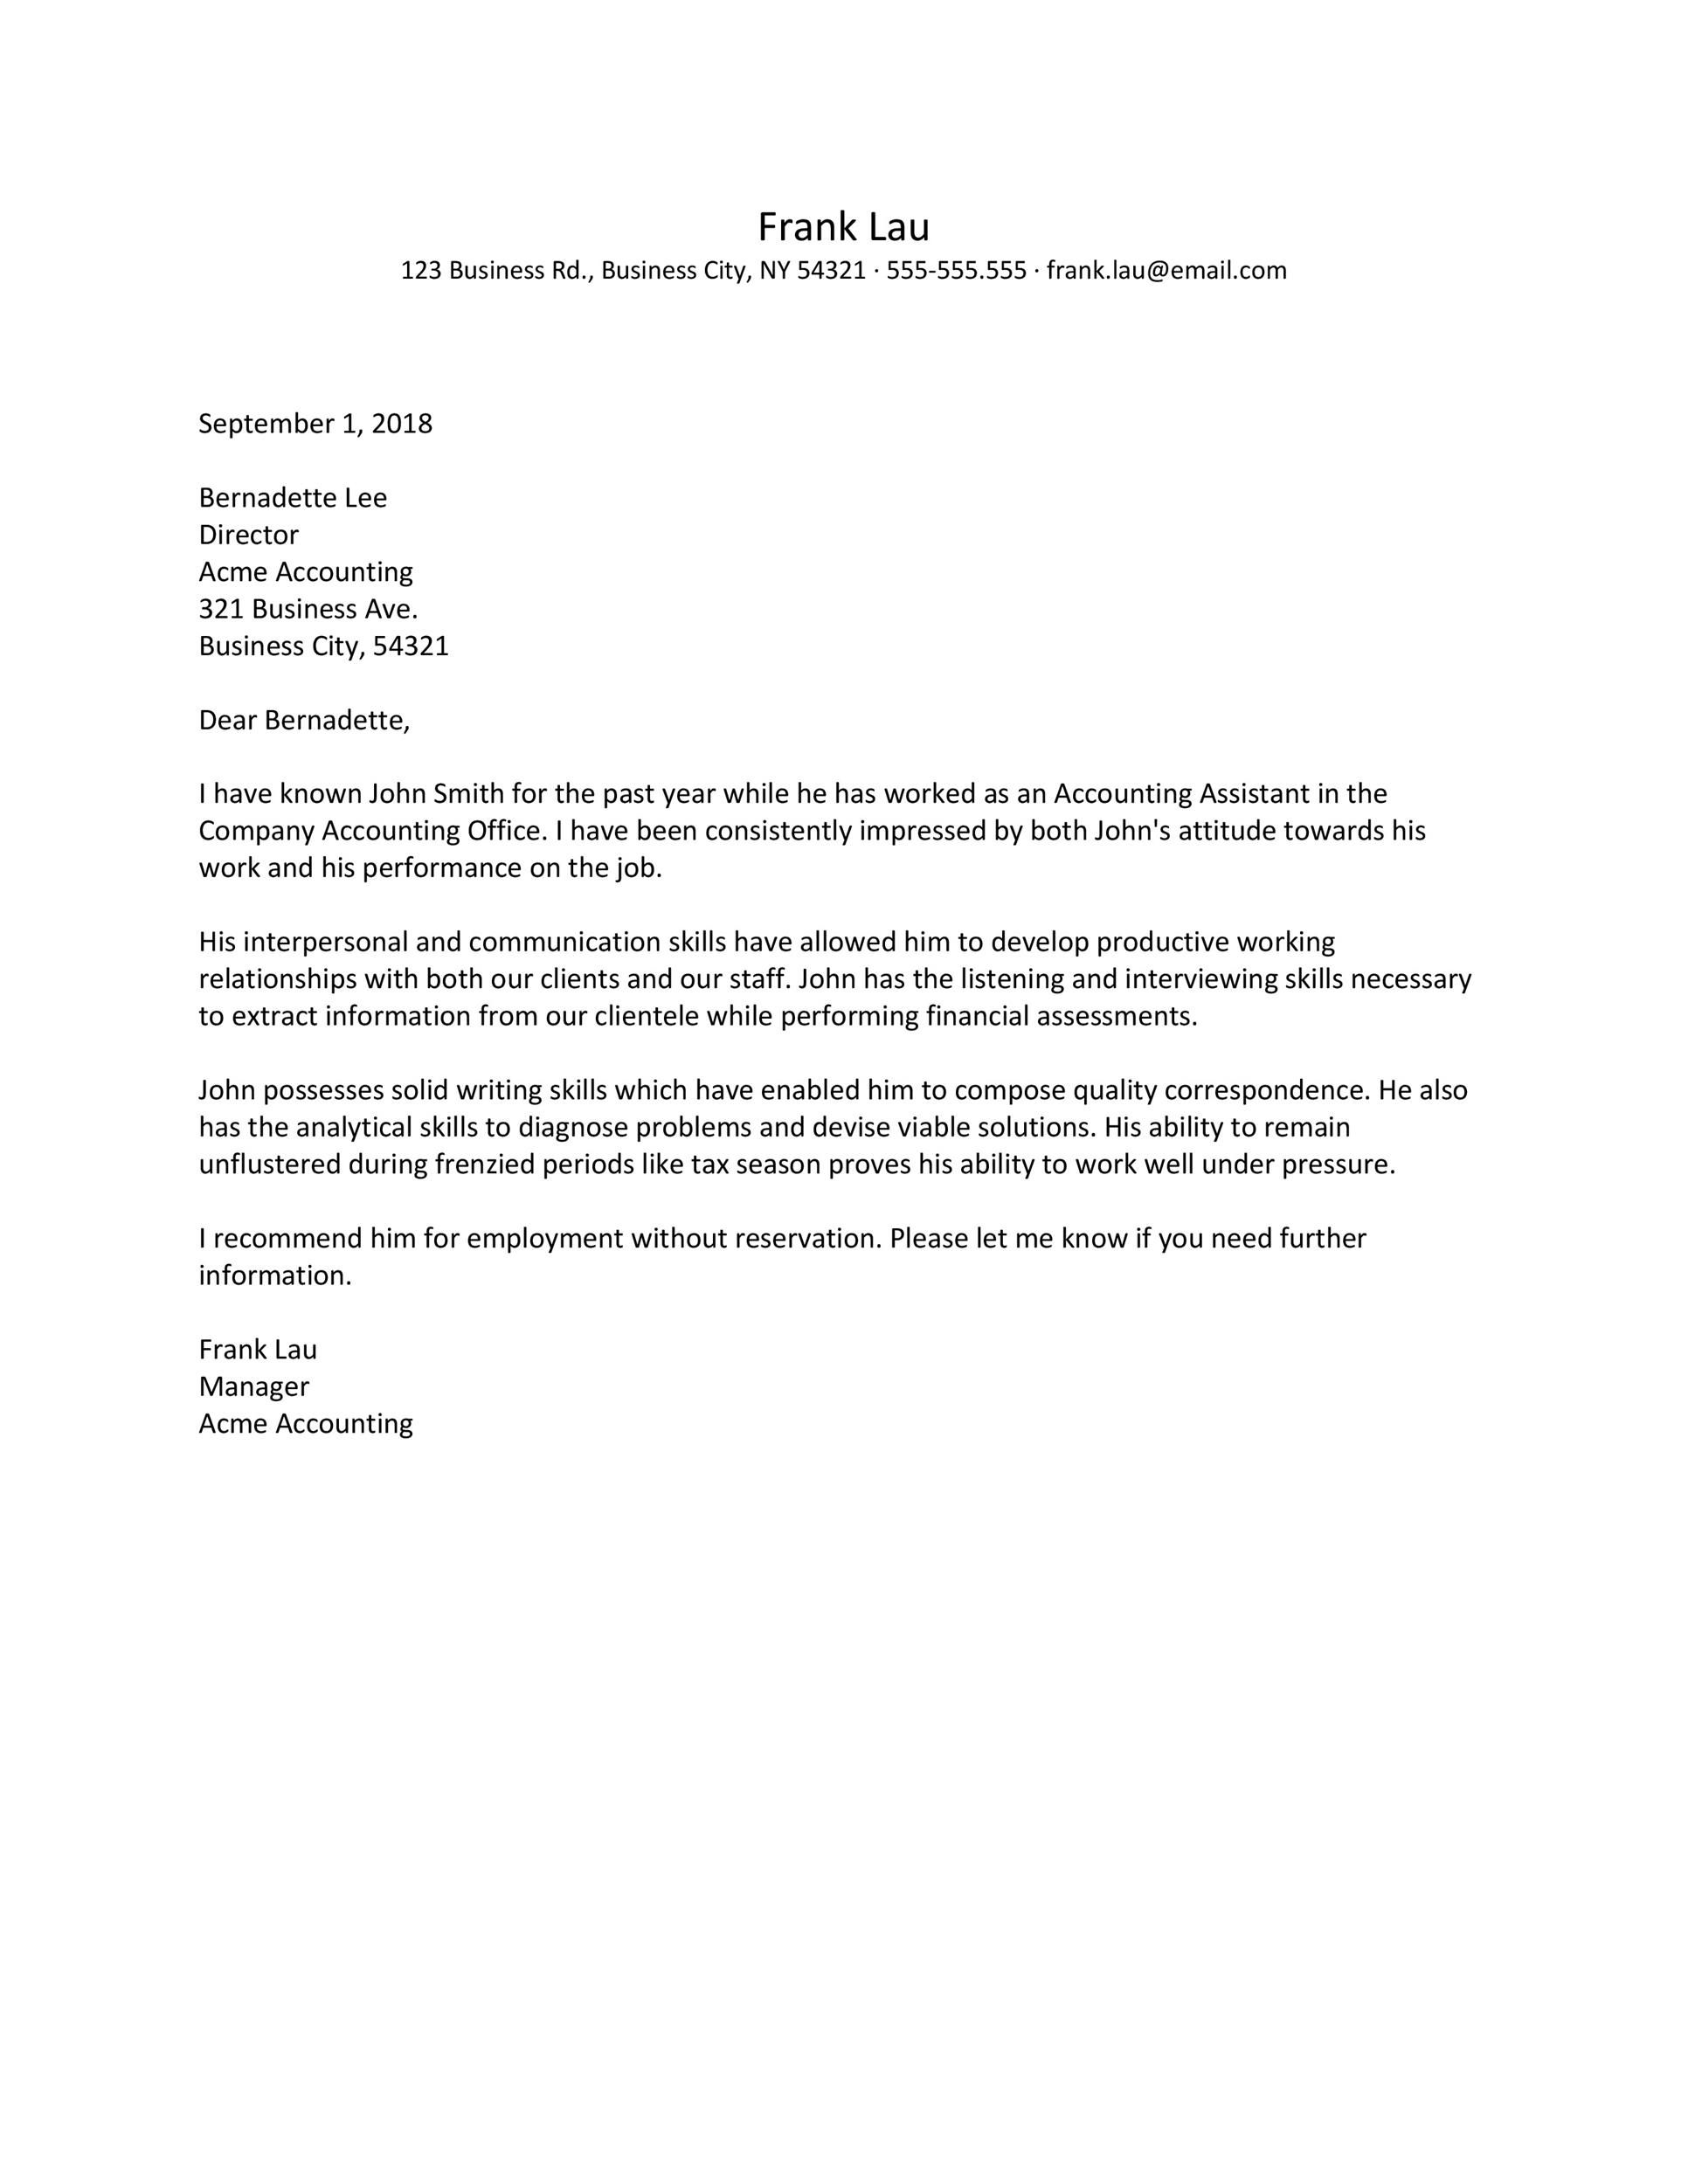 Recommendation Letter Template For Job Addictionary